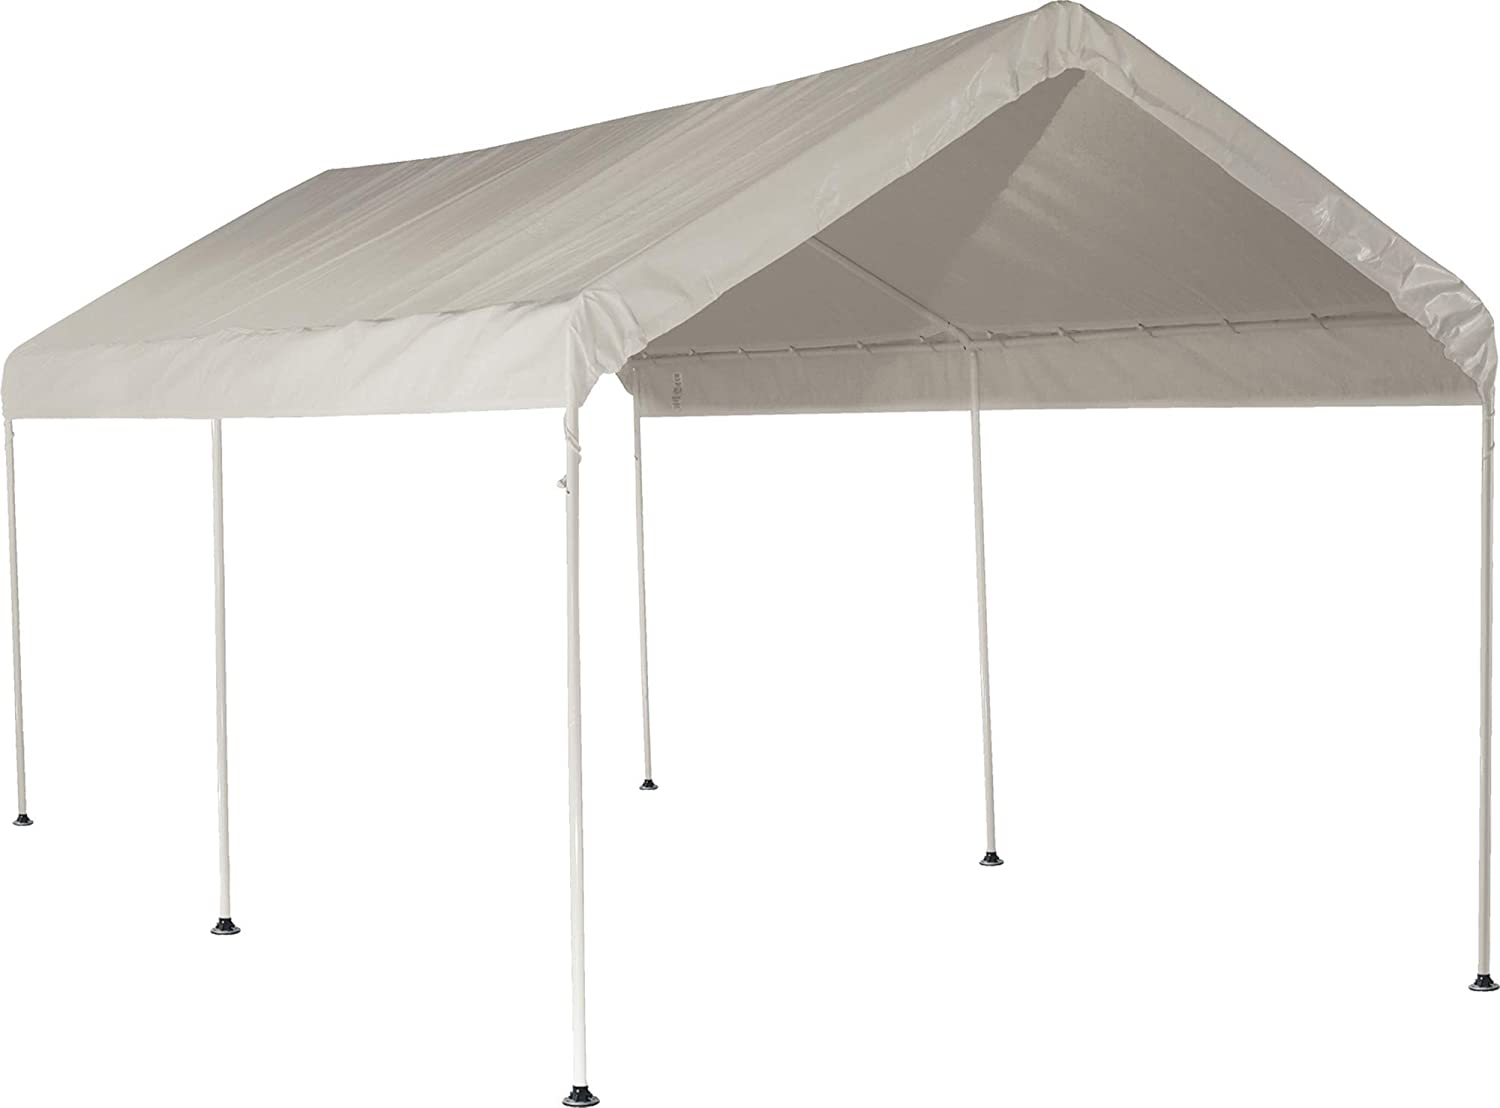 ShelterLogic 10' x 20' MaxAP Outdoor Gazebo or Heavy Duty Steel Canopy Including Waterproof Cover with 50+ UPF Sun Protection Backyard Shade Tent, White